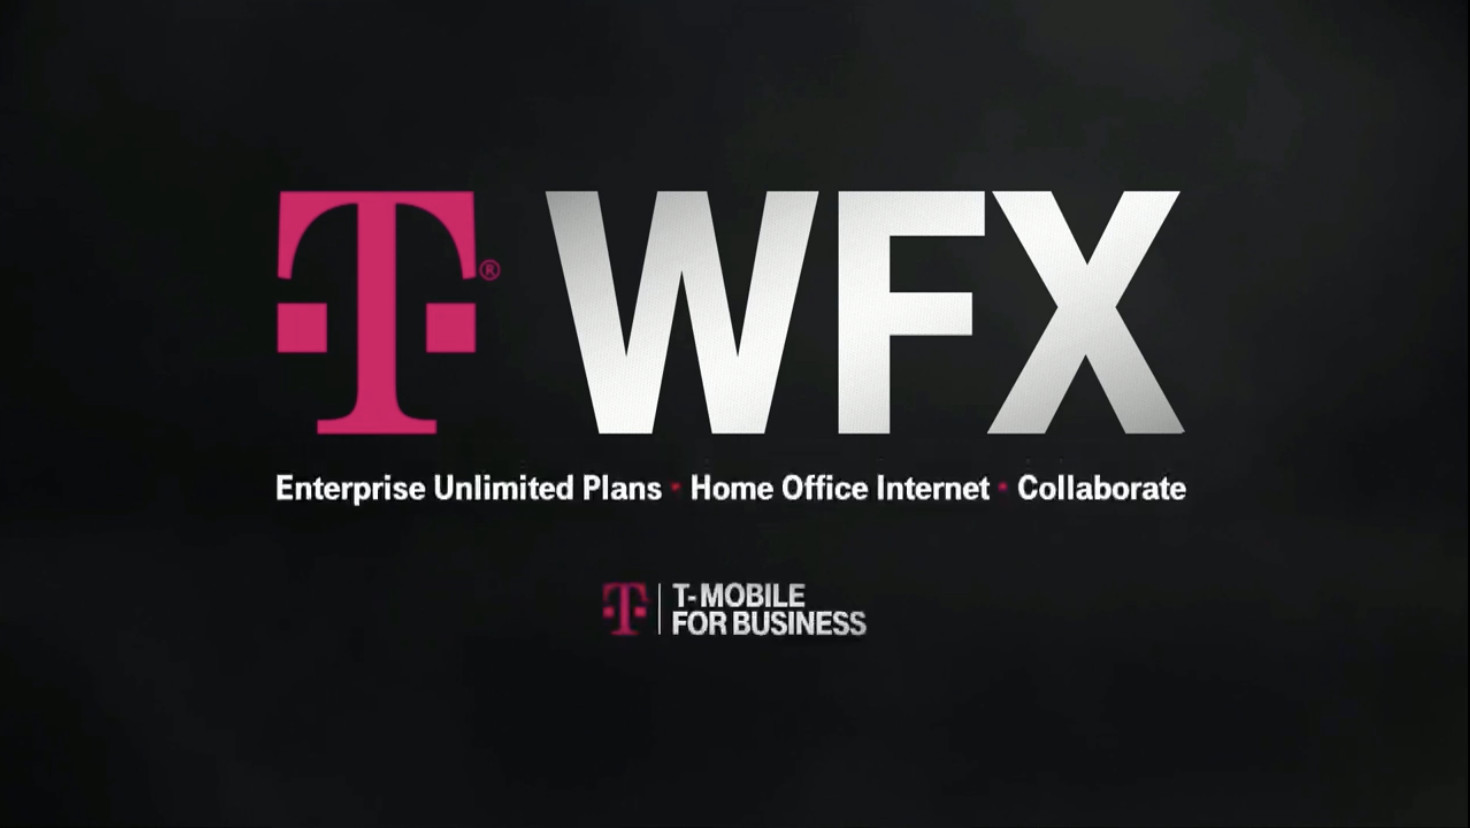 T-Mobile WFX